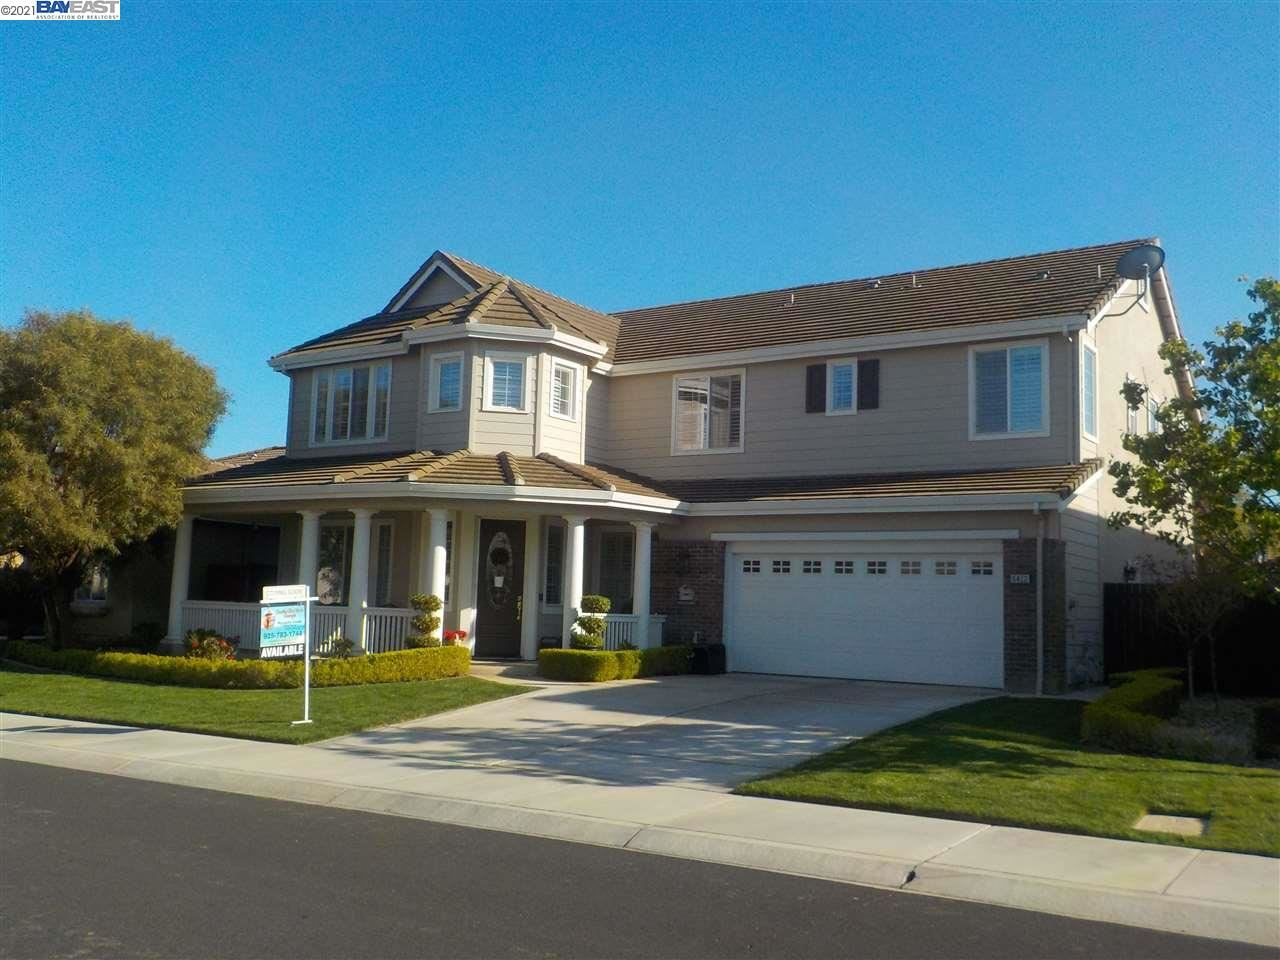 Photo of 6422 Green Castle Cir, DISCOVERY BAY, CA 94505 (MLS # 40944129)